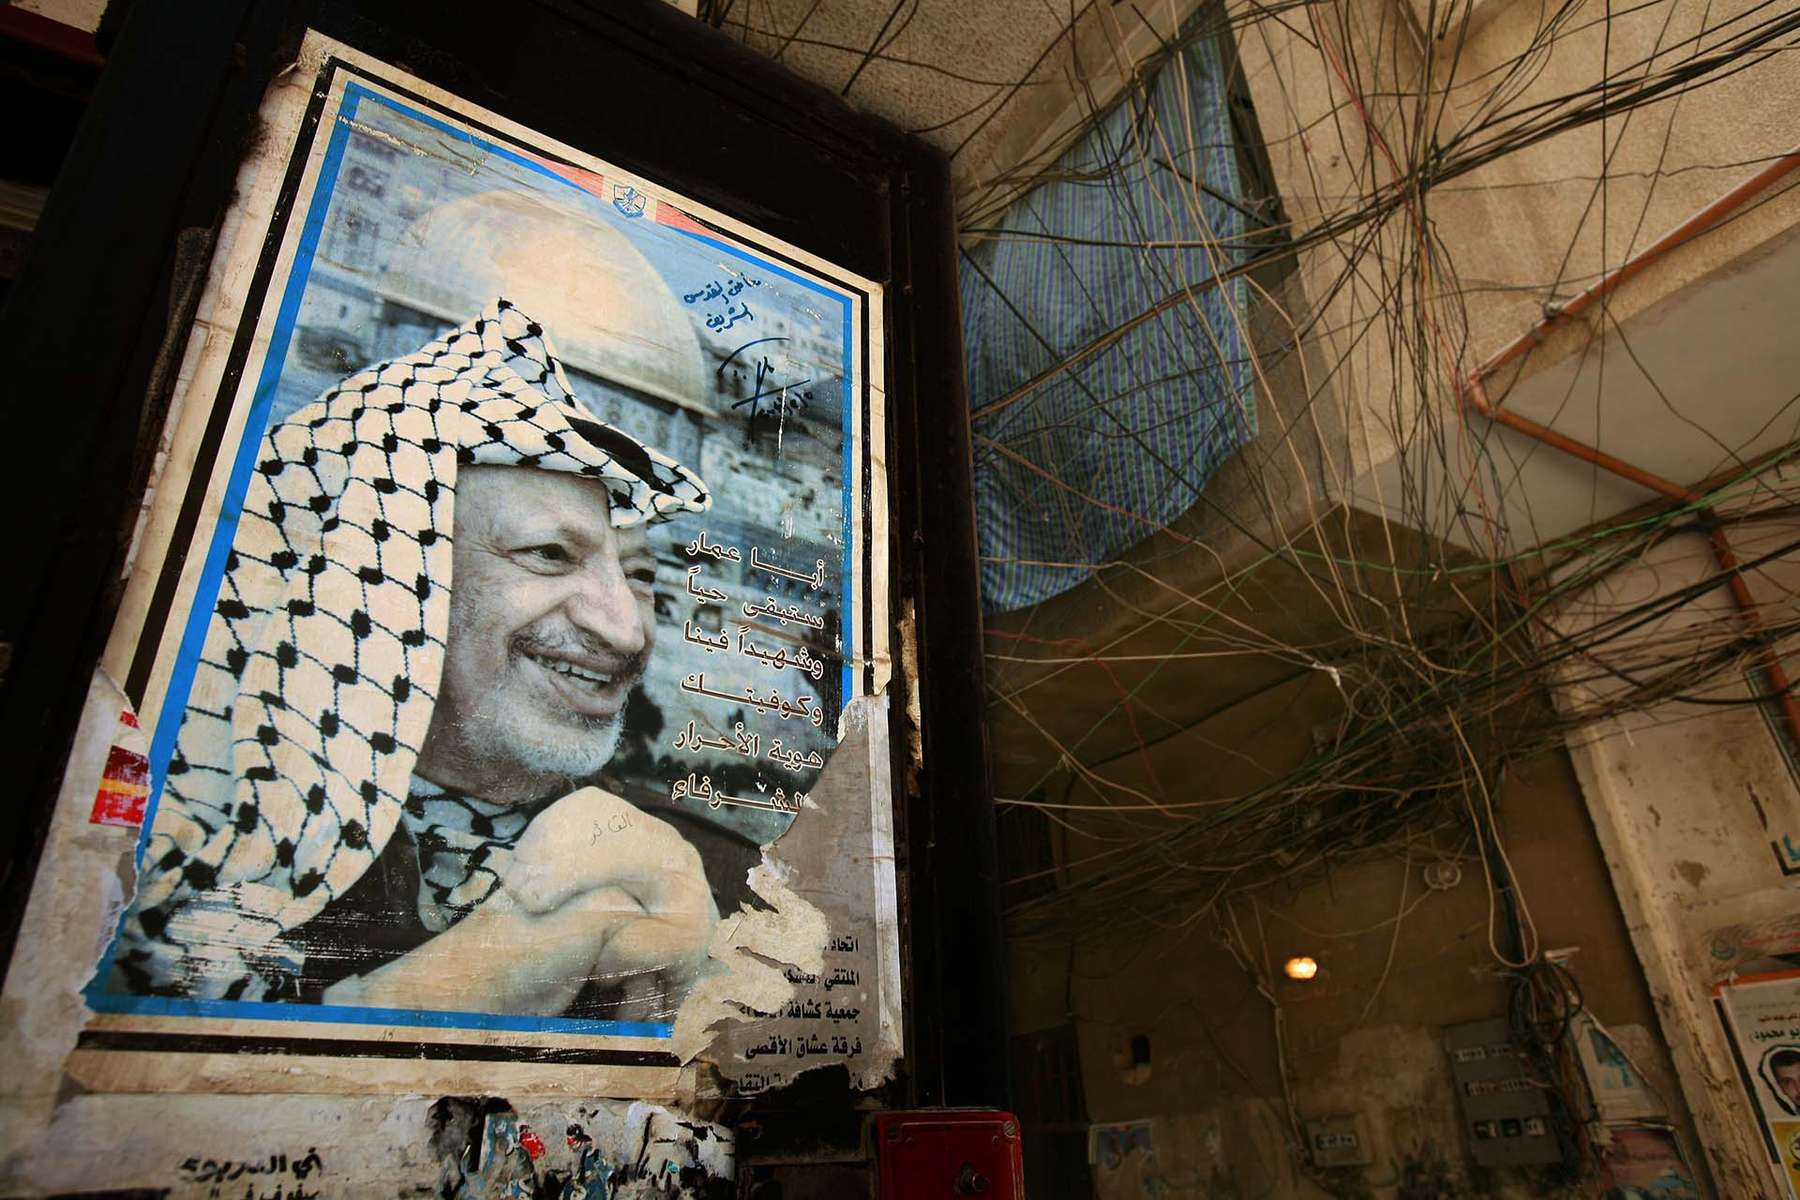 Poster of Yassar Arafat and a web of power cables at Baddawi Palestinian refugee camp near the city of Tripoli Saturday, May 26, 2007. Battle between Lebanese Army and Fatah al-Islam, armed Sunni Palestinian group thought to have links with al-Quida continue to fight continues at near-by Nahr Al-Bared camp. Fatah al-Islam started at Baddawi camp, but left the camp and moved to Baddawi to establish themselves.